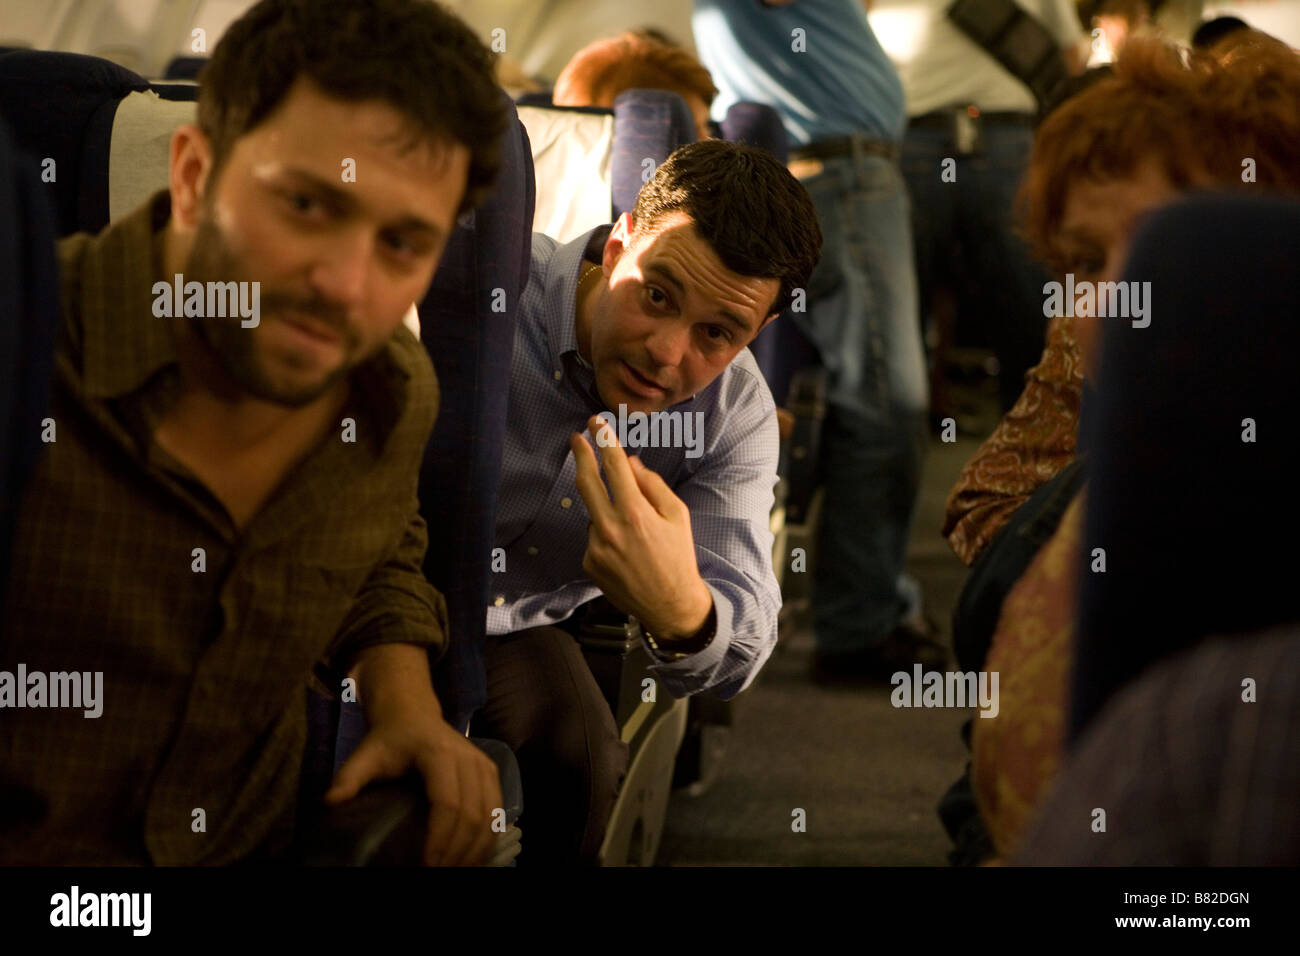 United 93  Year 2006 USA Director: Paul Greengrass - Stock Image